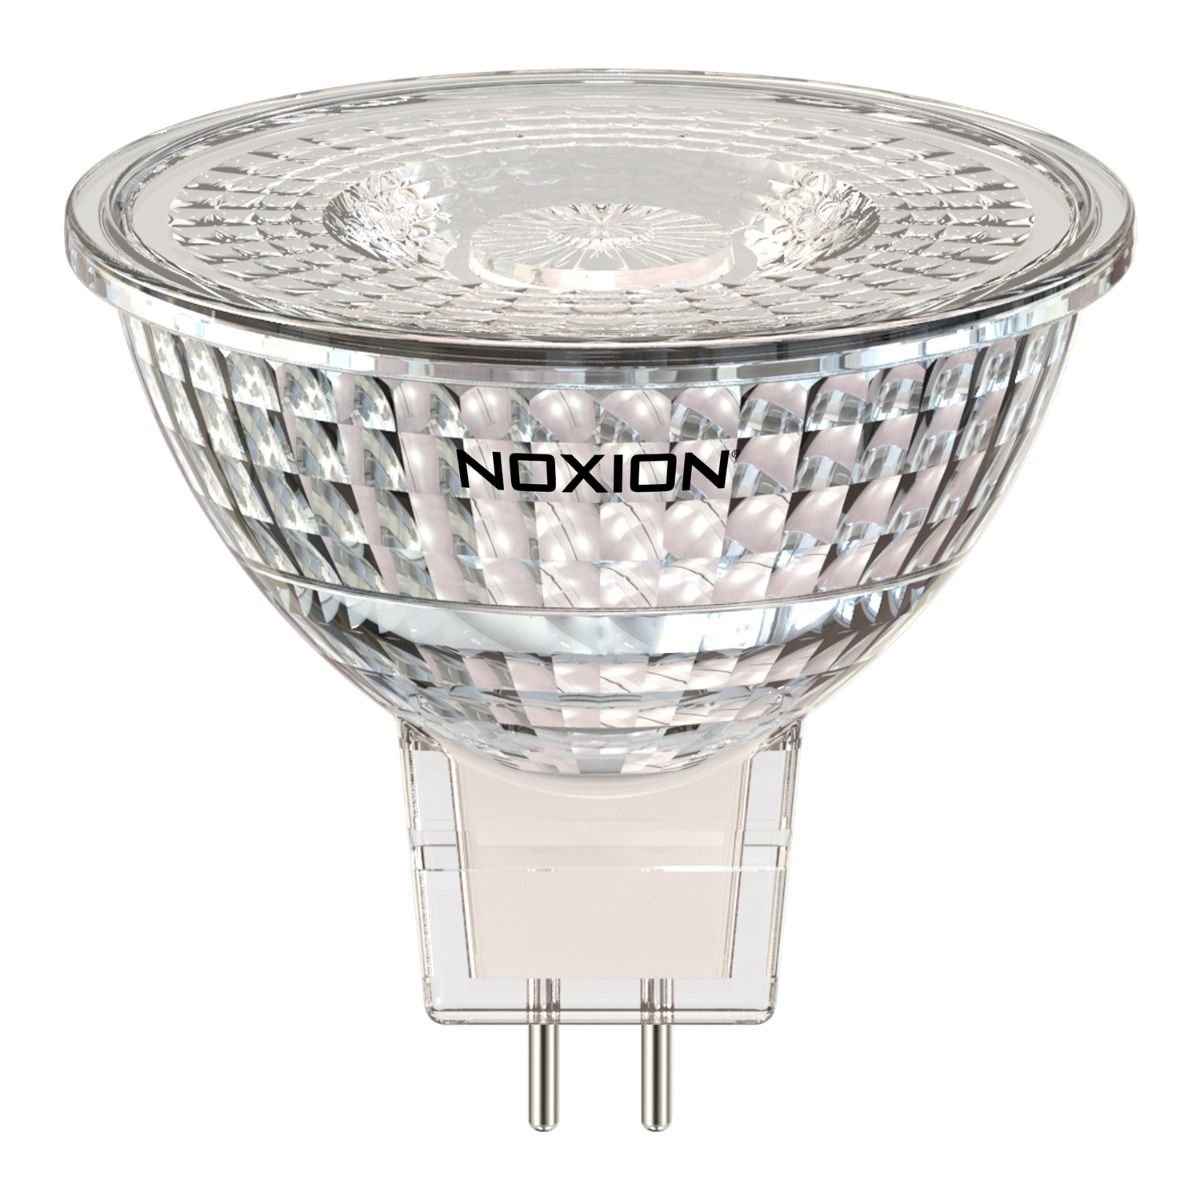 Noxion LED Spot GU5.3 5W 830 36D 470lm | Dimmable - Warm White - Replaces 35W